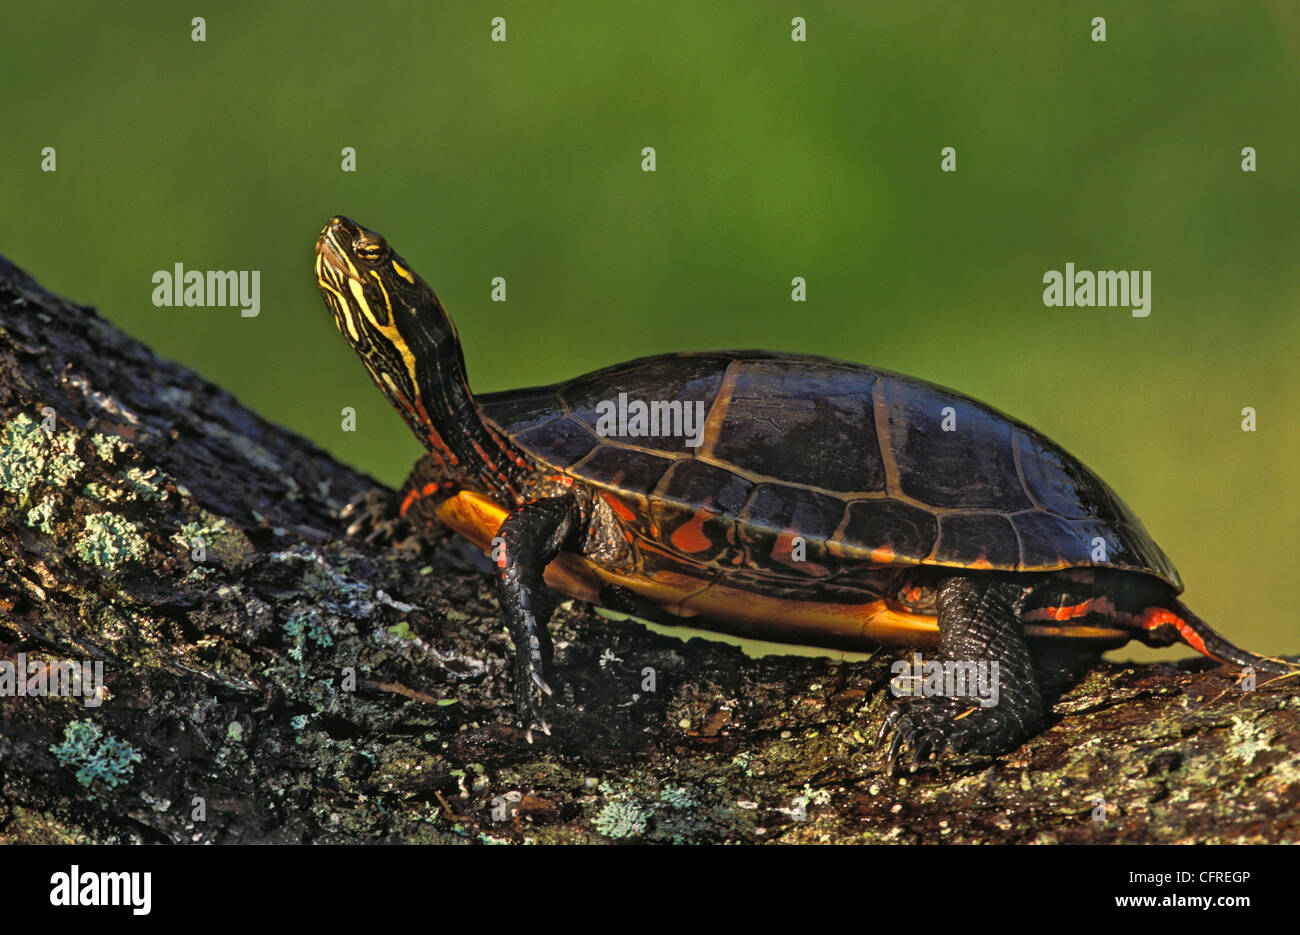 Eastern Painted Turtle (Chrysemys p. picta), Nova Scotia - Stock Image